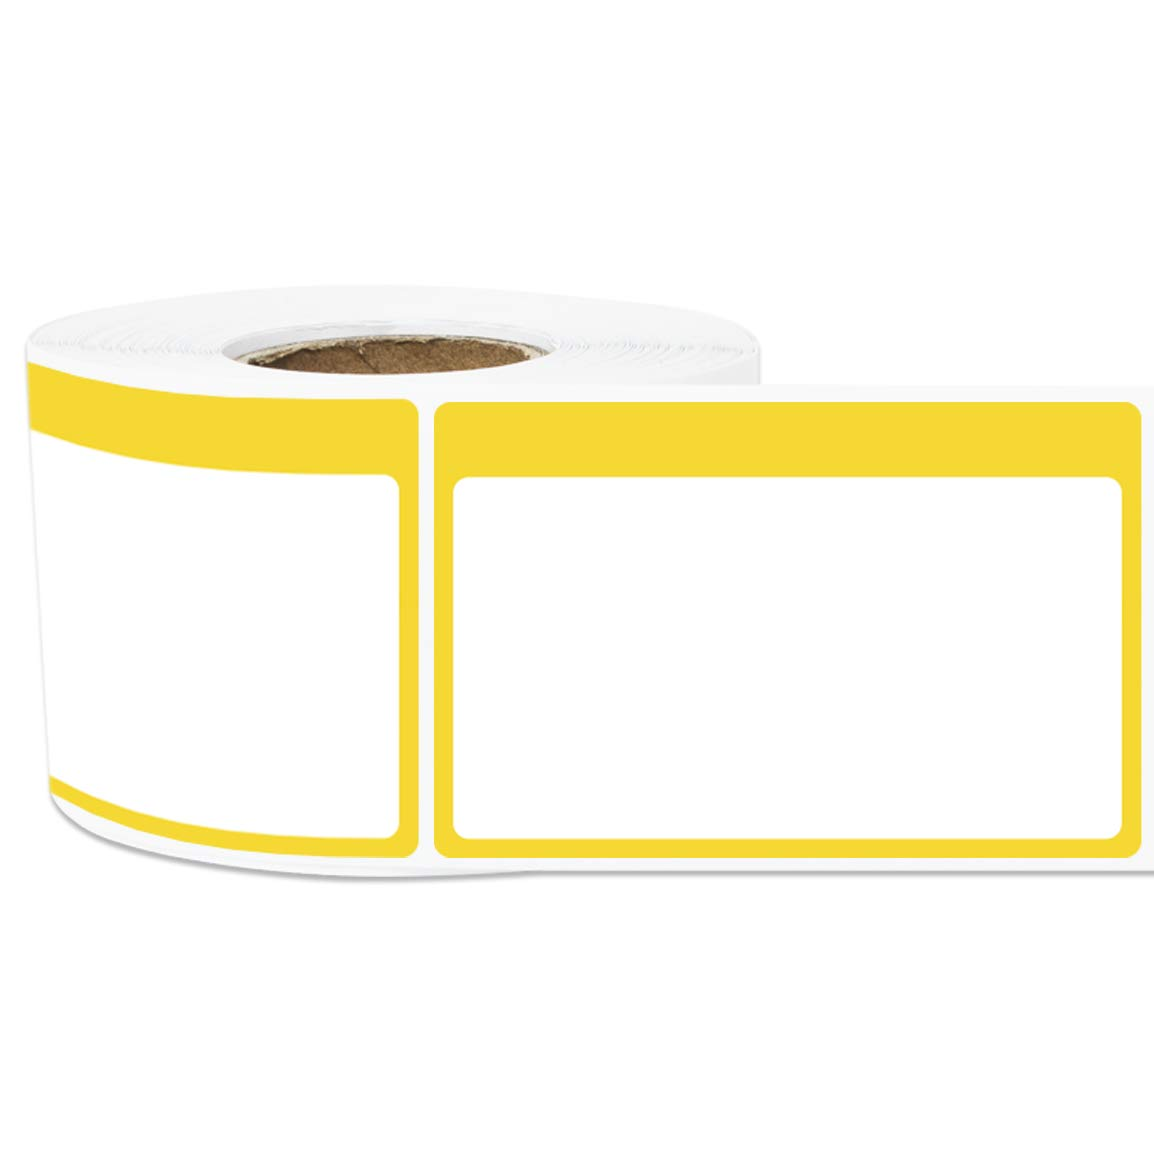 1 Roll - Plain Writable Name Tag Labels with Colorful Border for Visitor  Badges 3 5